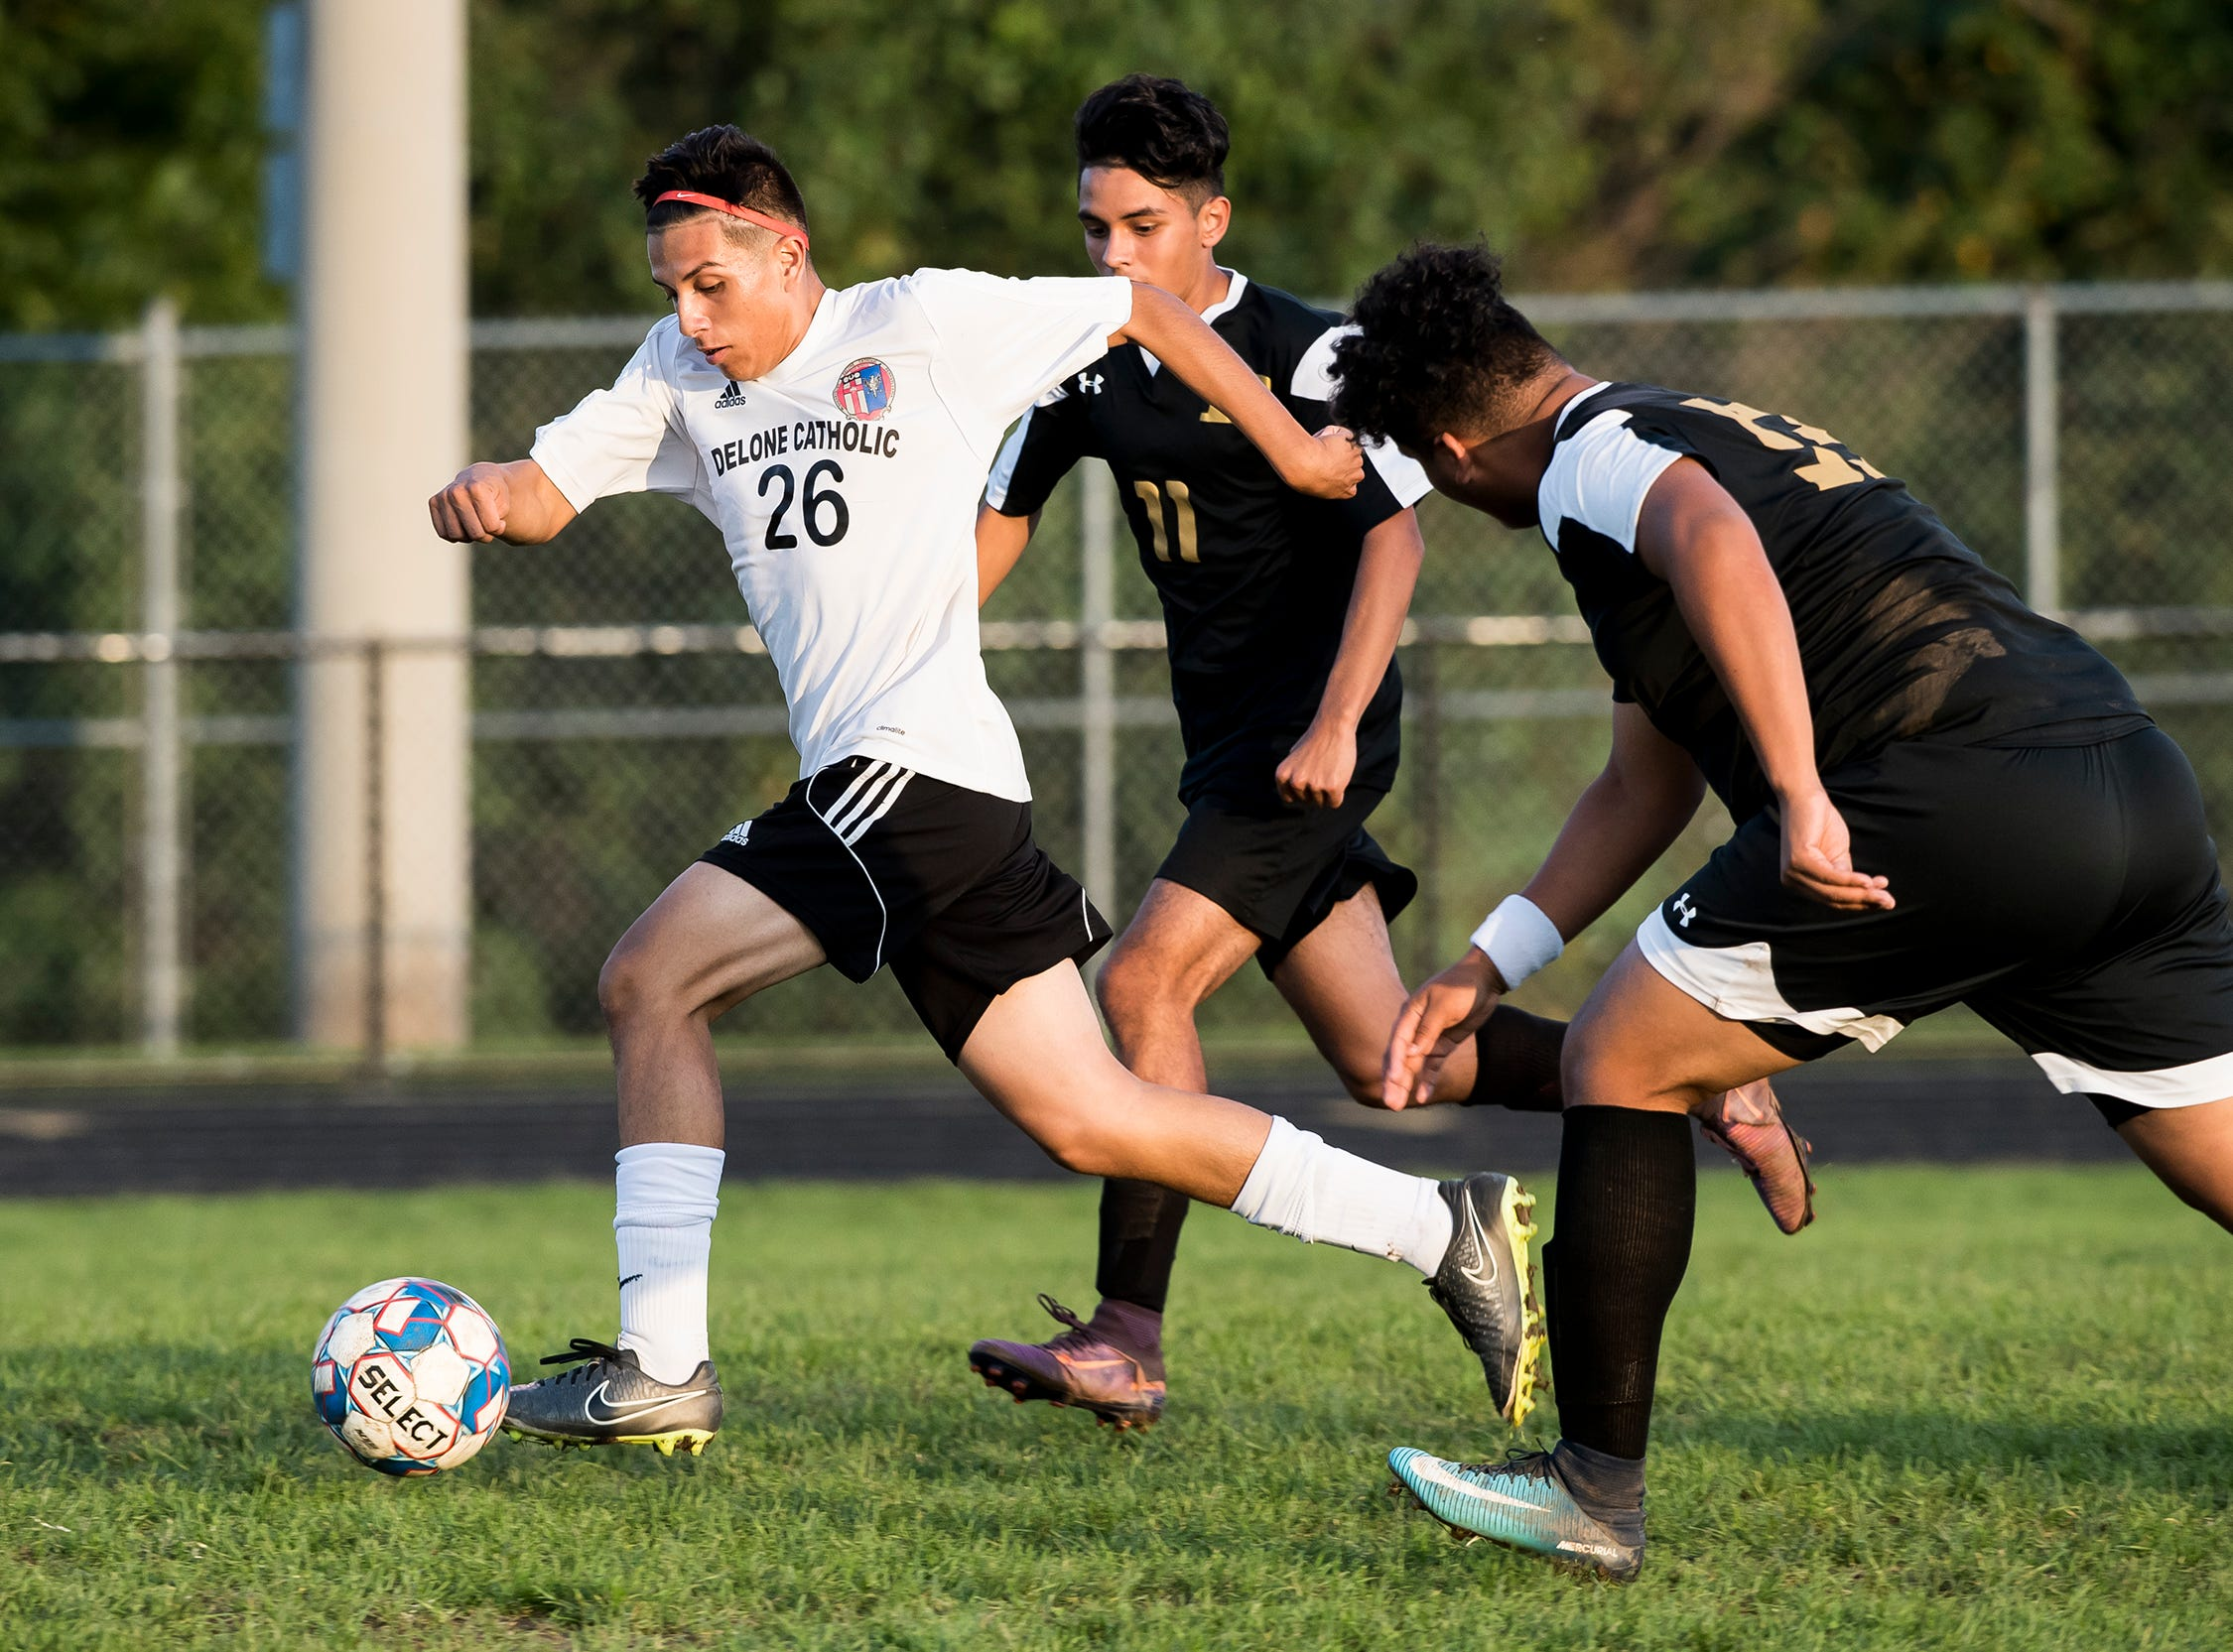 Delone Catholic's Alex Zepeda (26) breaks away from two Biglerville defenders during a game on Wednesday, October 3, 2018. The Squires fell 3-0.